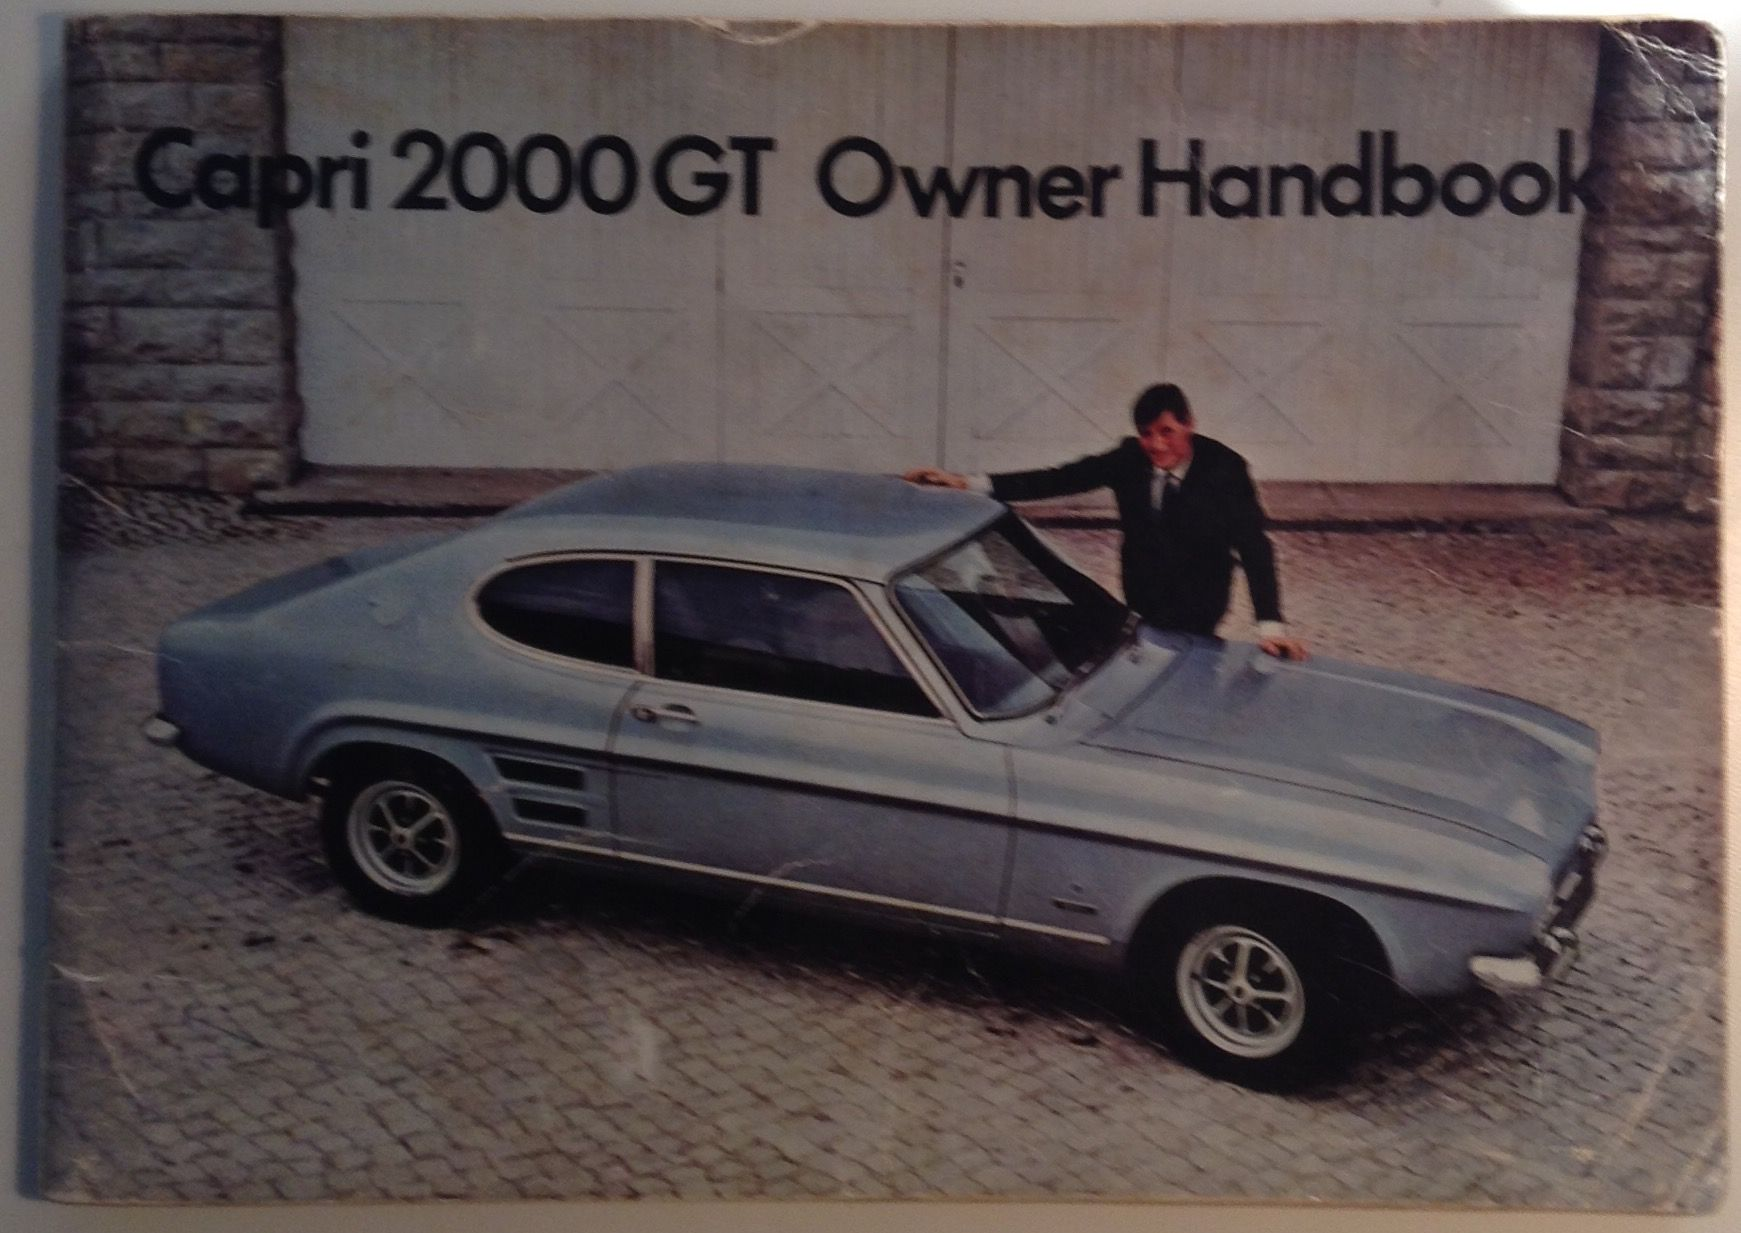 ford capri 2000gt owner handbook by ford motor co first. Black Bedroom Furniture Sets. Home Design Ideas